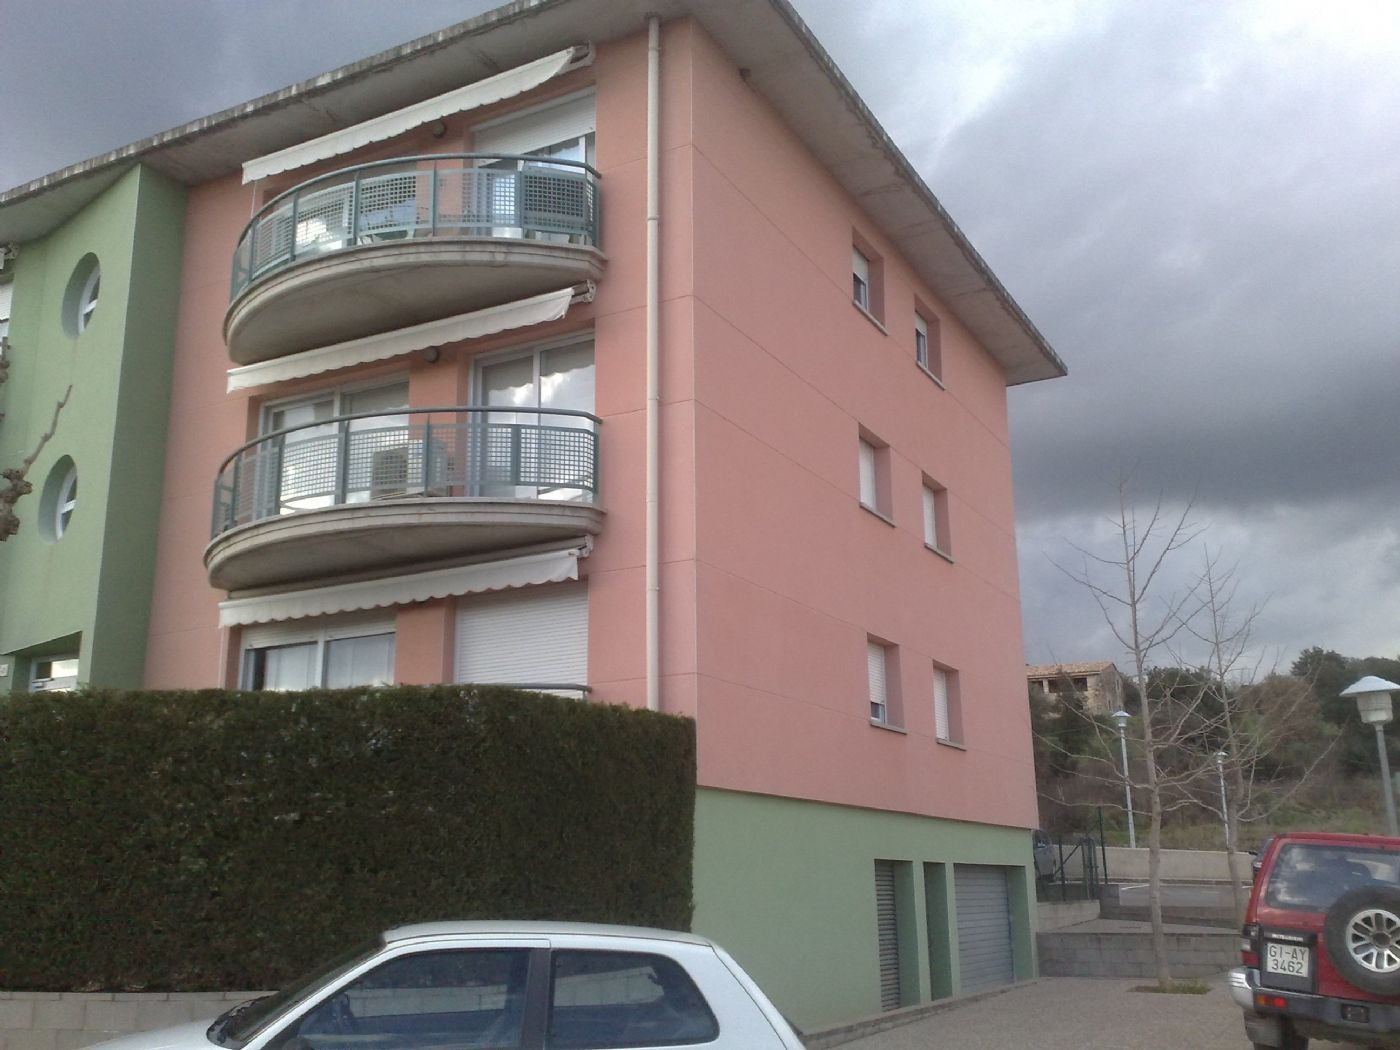 Pis en Carrer torrent vidal, 47. Magnífico piso totalmente exterior + parking